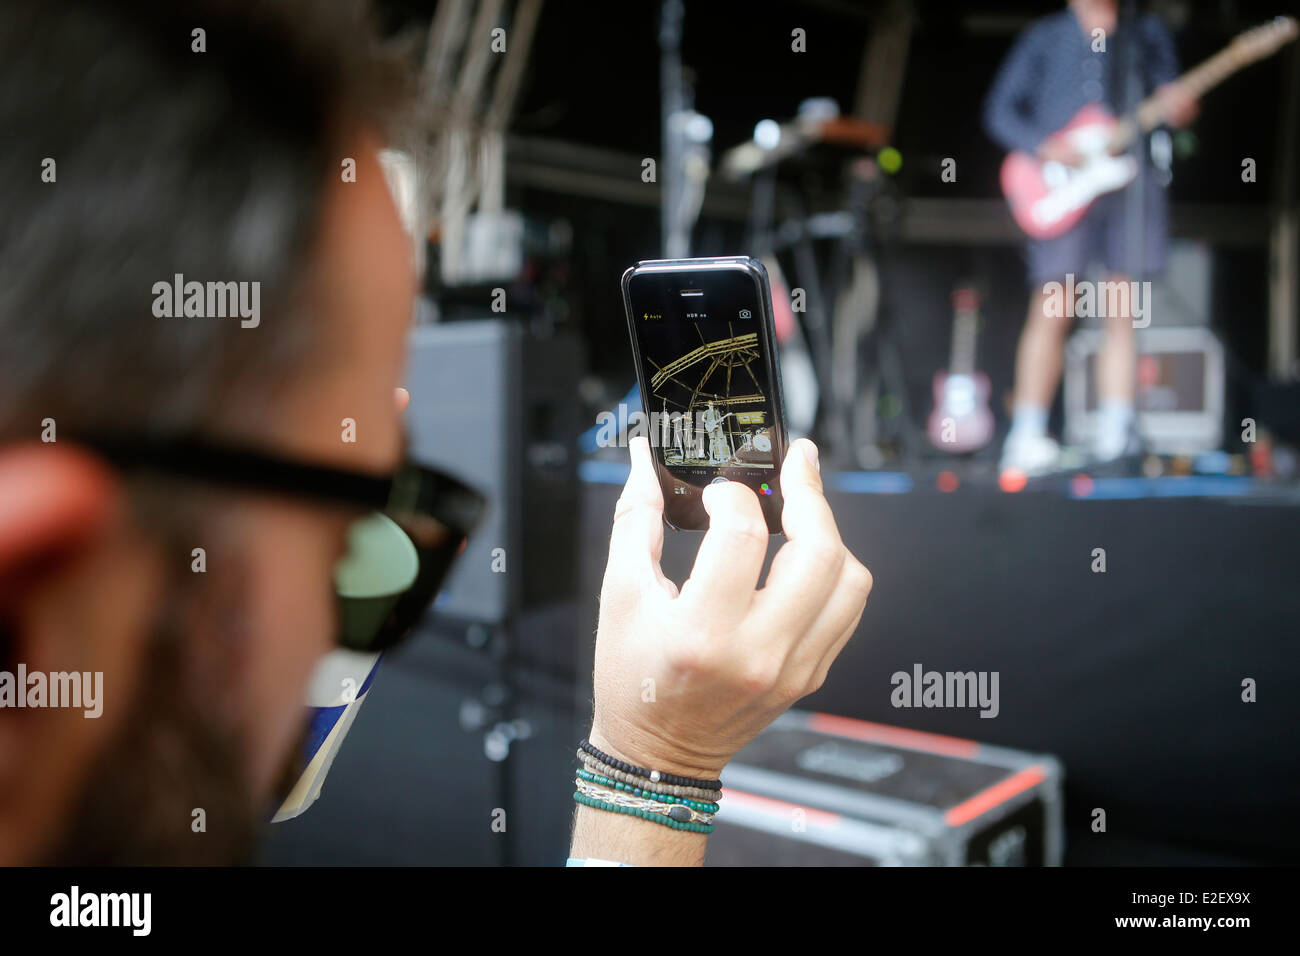 A man pictures with his mobile phone a live event during Sonar advanced music festival in Barcelona, Spain - Stock Image